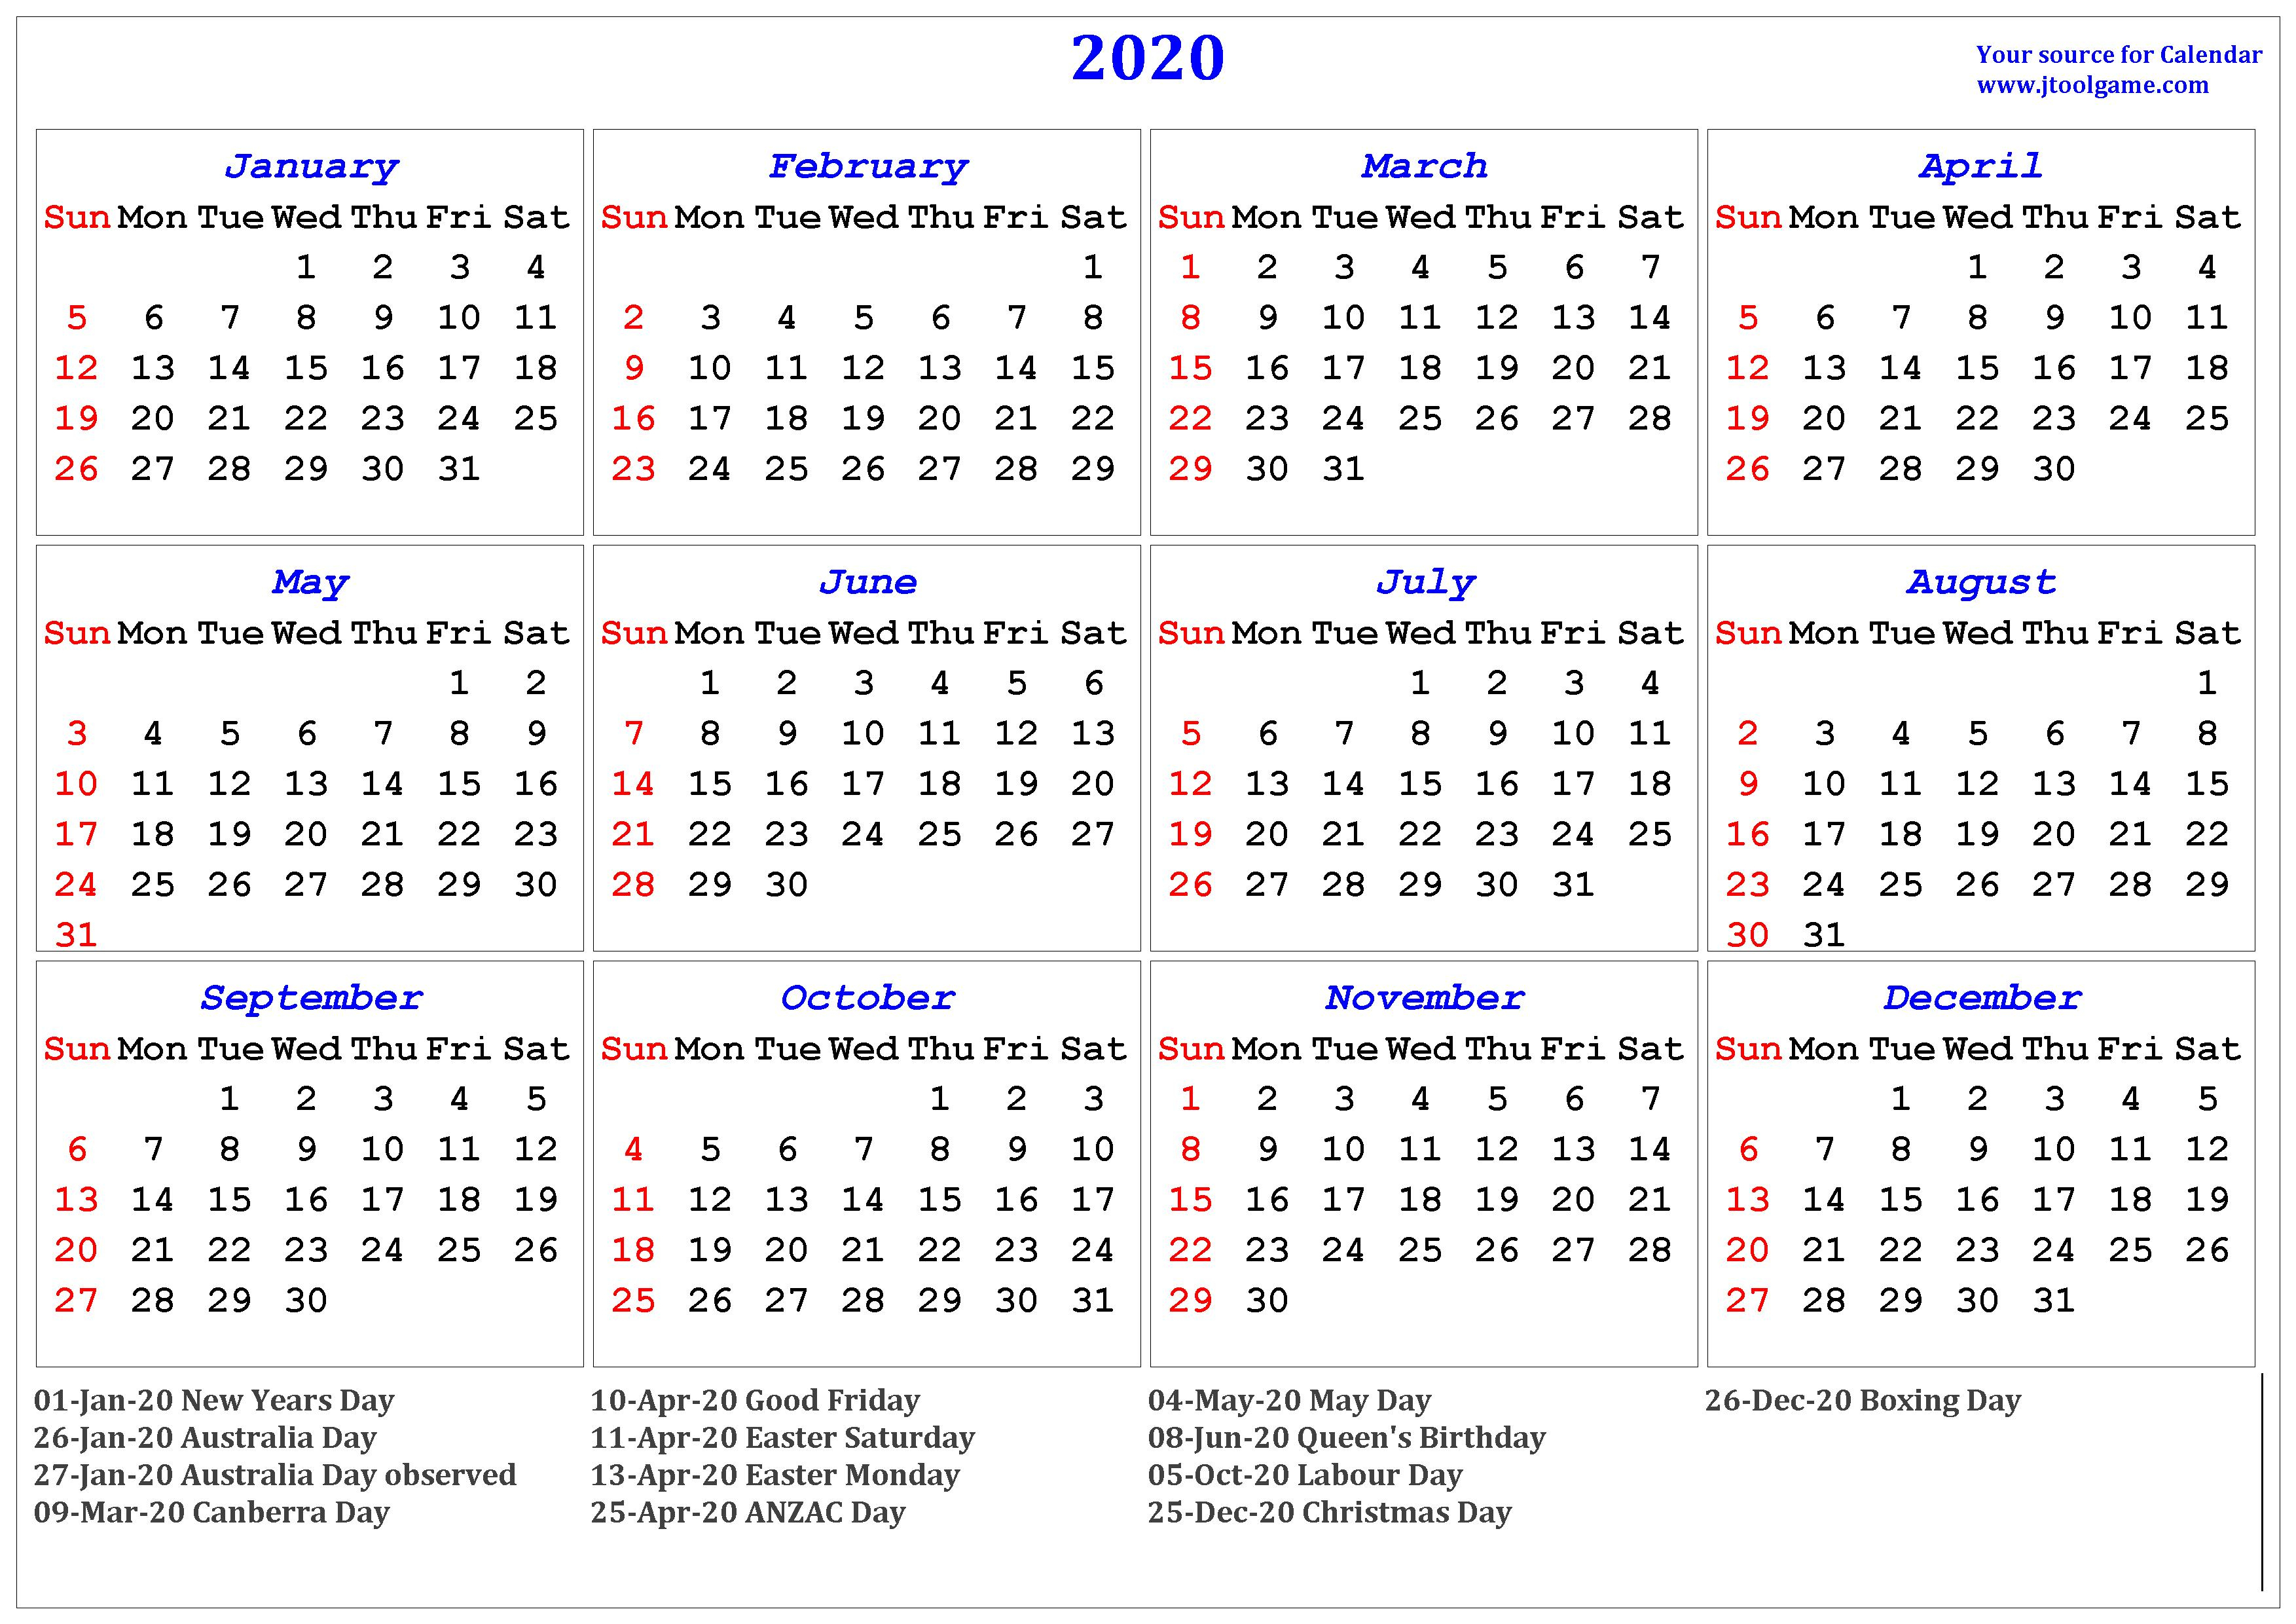 2020 Calendar - Printable Calendar. 2020 Calendar In Multiple Colors inside Free Printable 2020 Monday To Friday Australian Calender